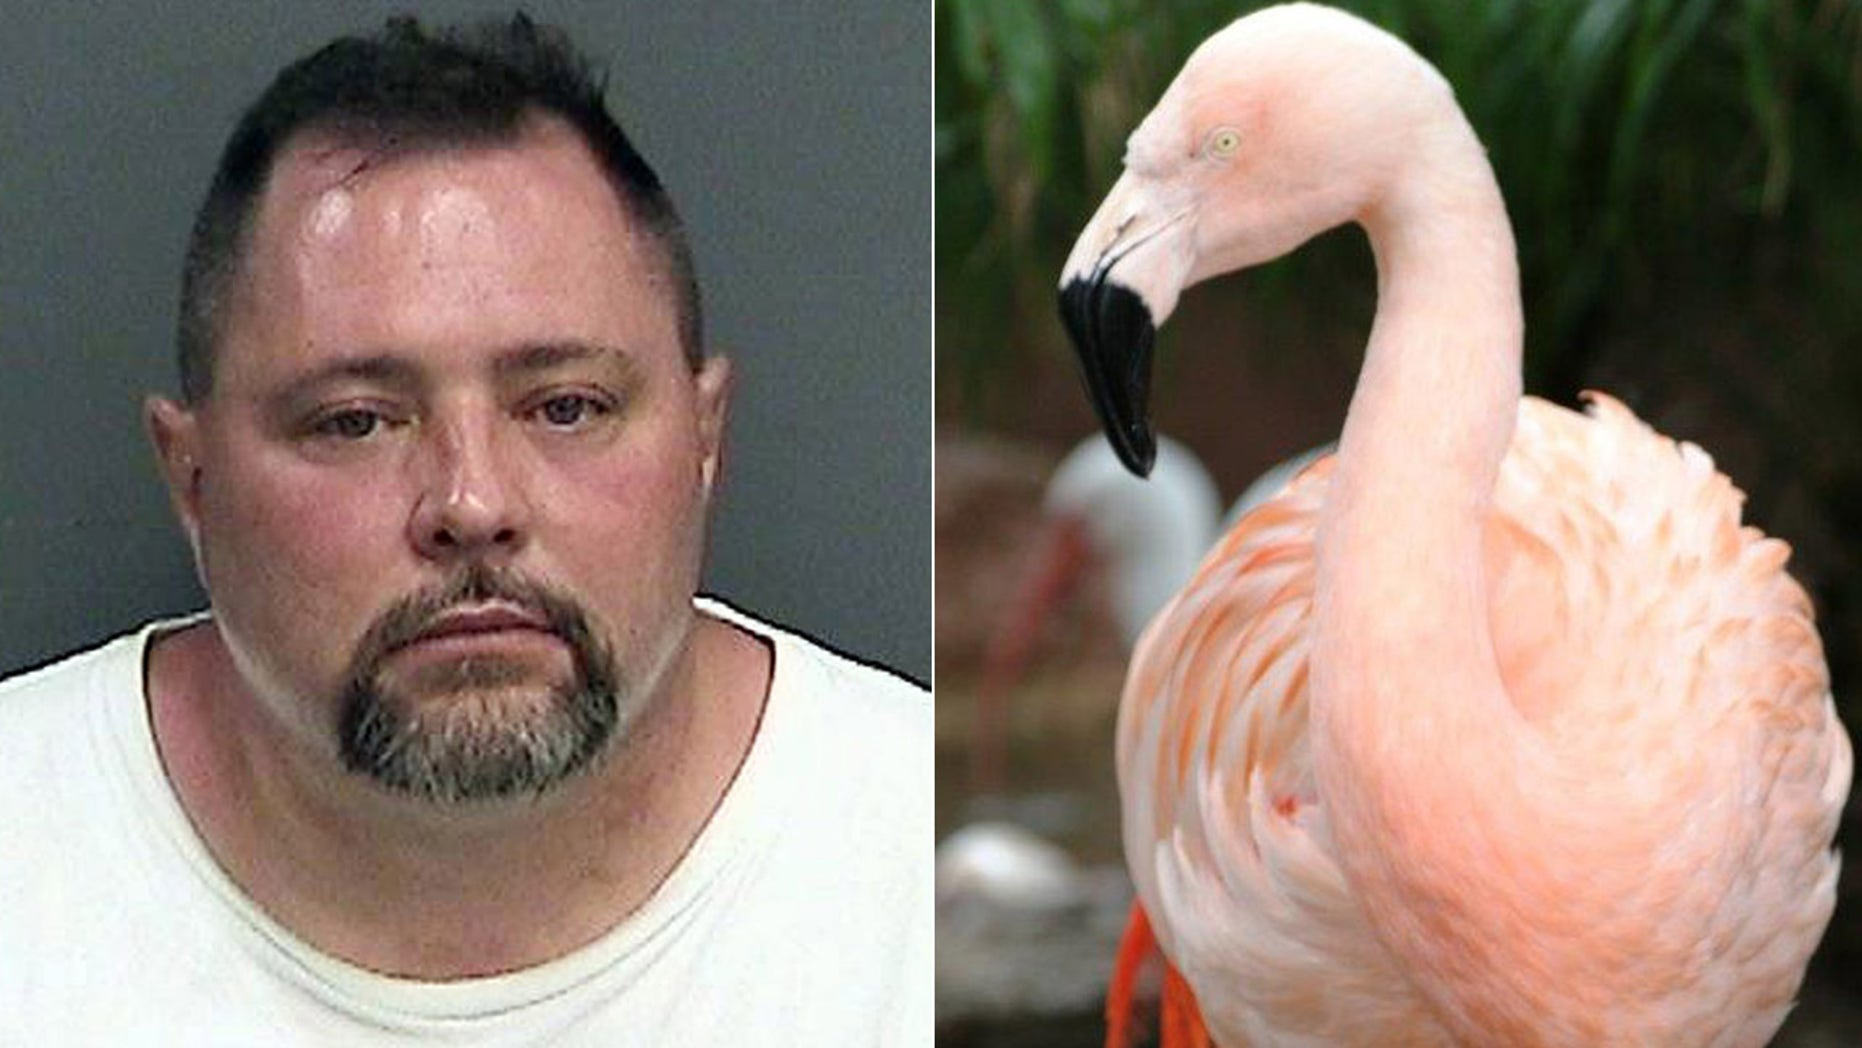 These undated photos show Joseph Corrao (left) and Pinky, a flamingo at Busch Gardens in Tampa, Fla. Police say Corrao was visiting the theme park with his family when he reached into a pen, picked up Pinky and threw her down. The bird suffered traumatic injuries and had to be euthanized. Corrao was arrested and released on bond.